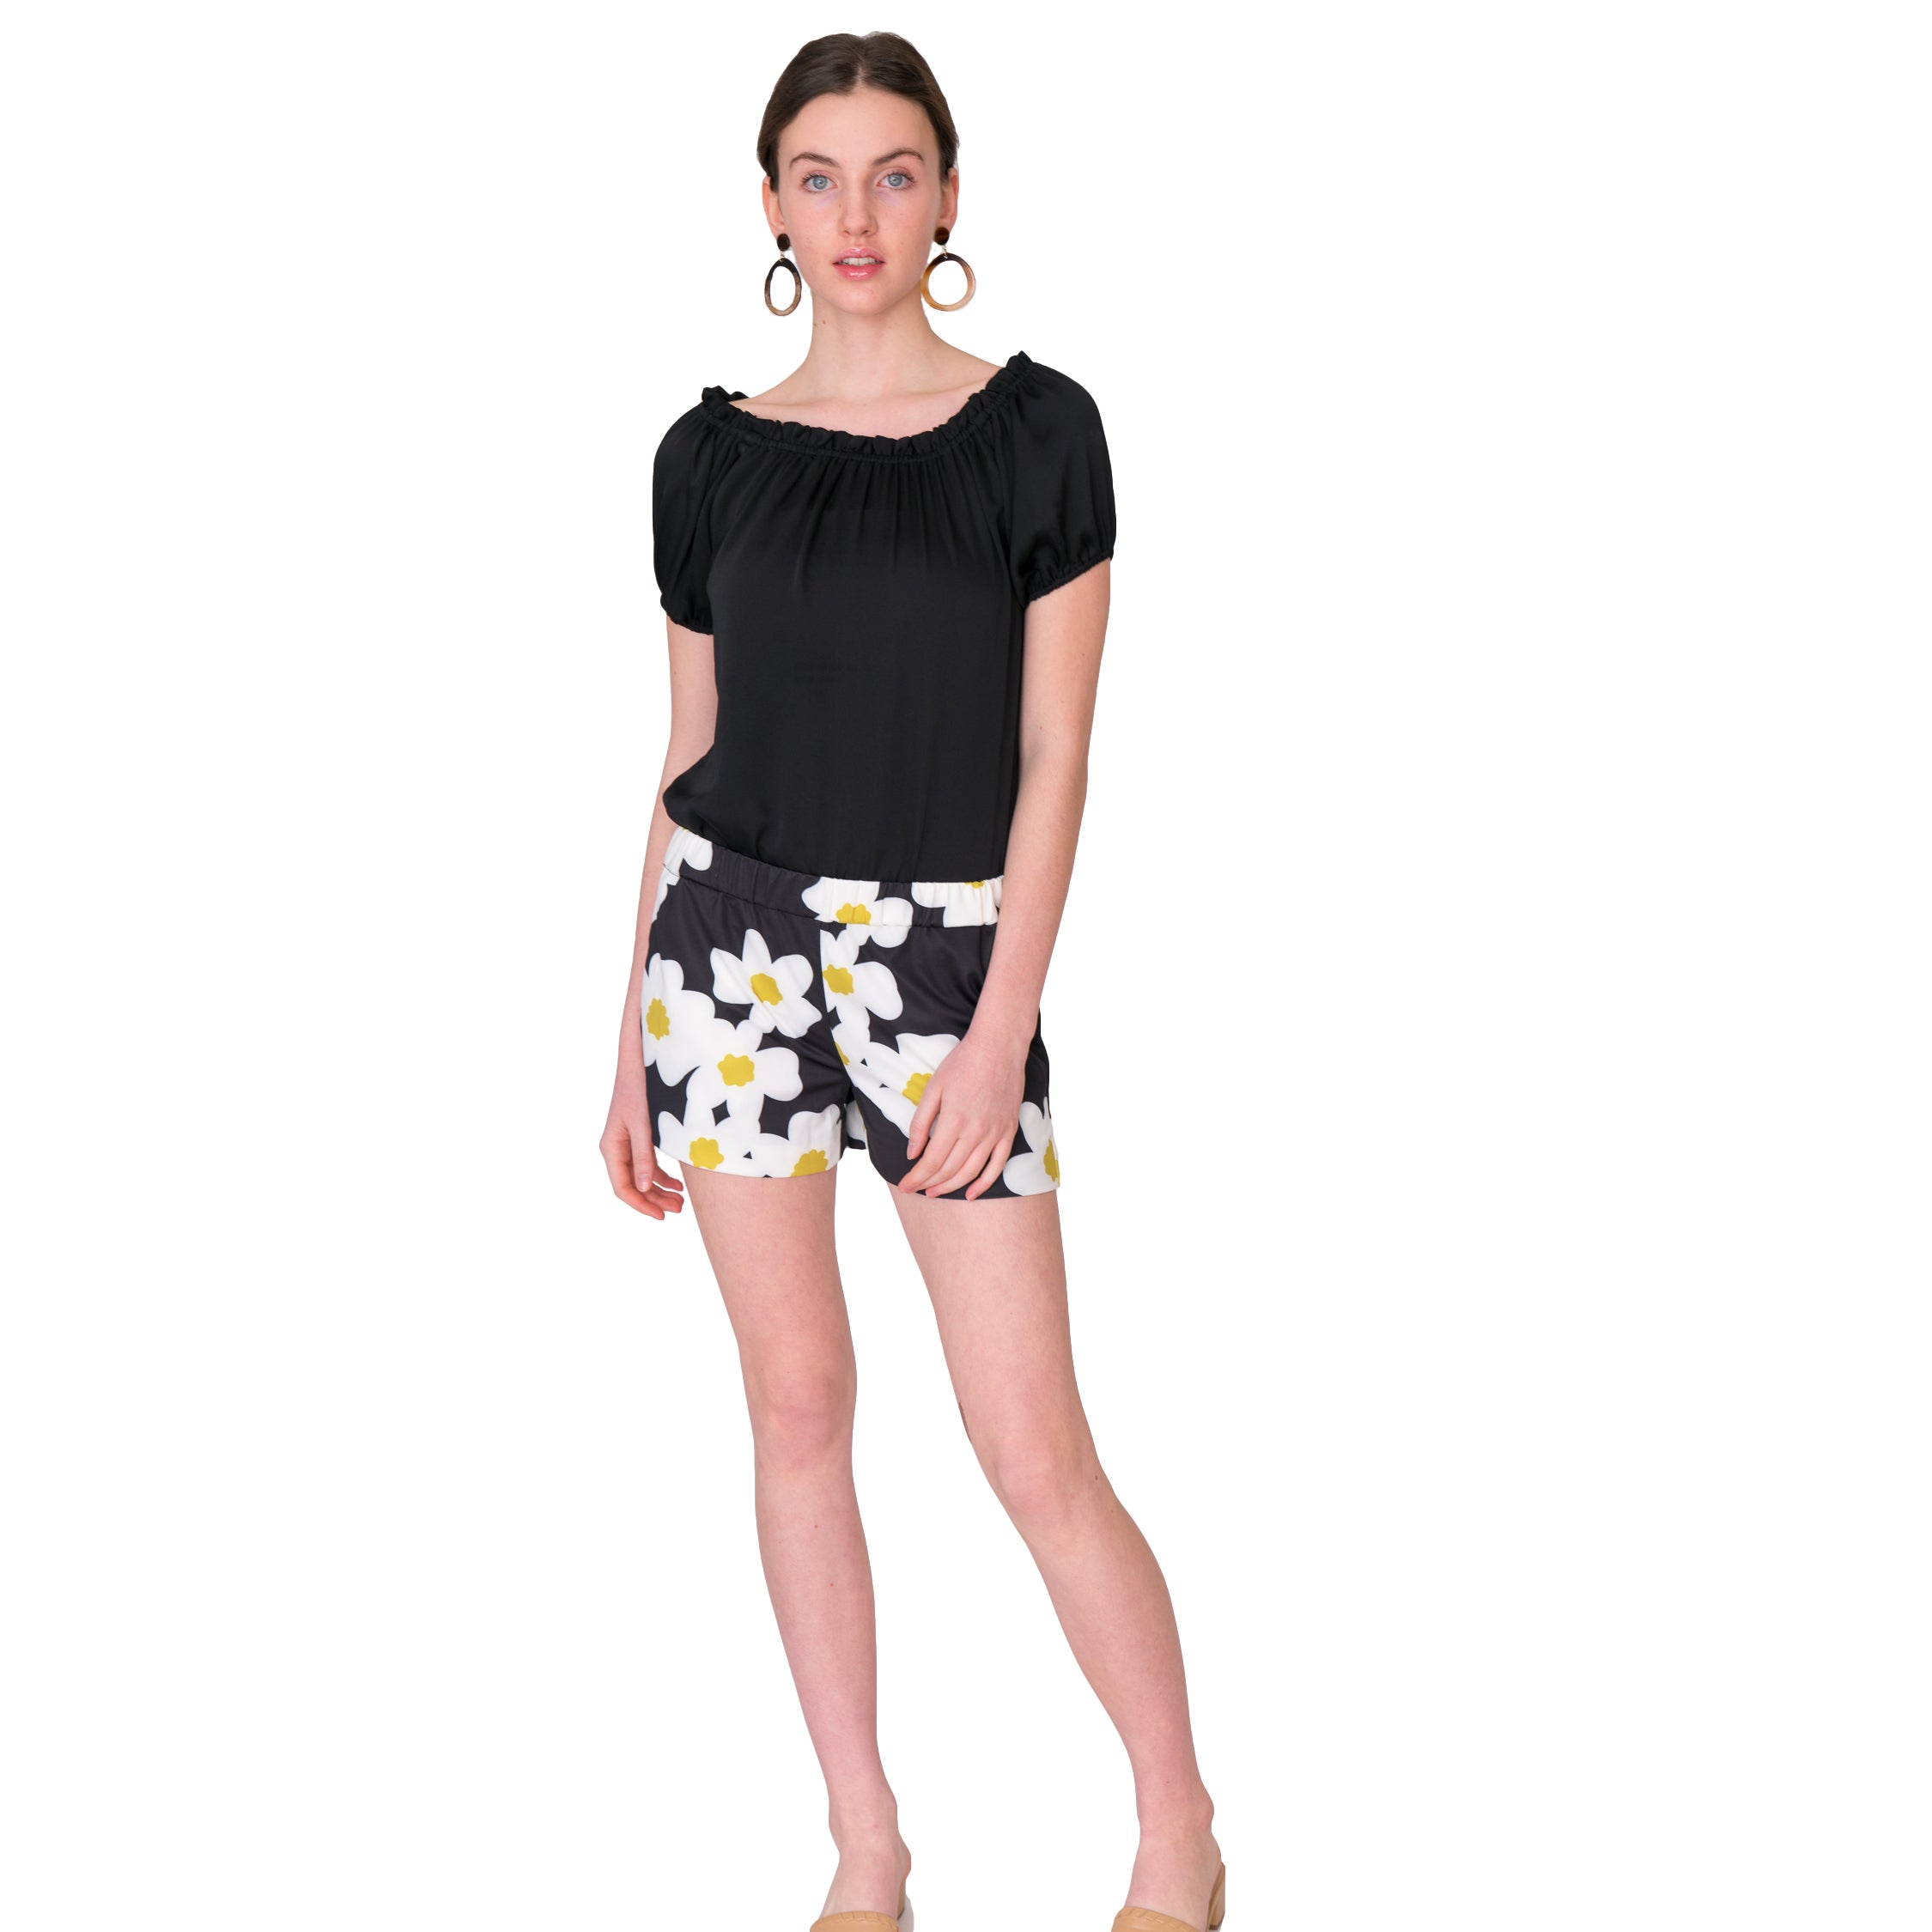 Libby Shorts in Mod Floral - Elizabeth Ackerman New York